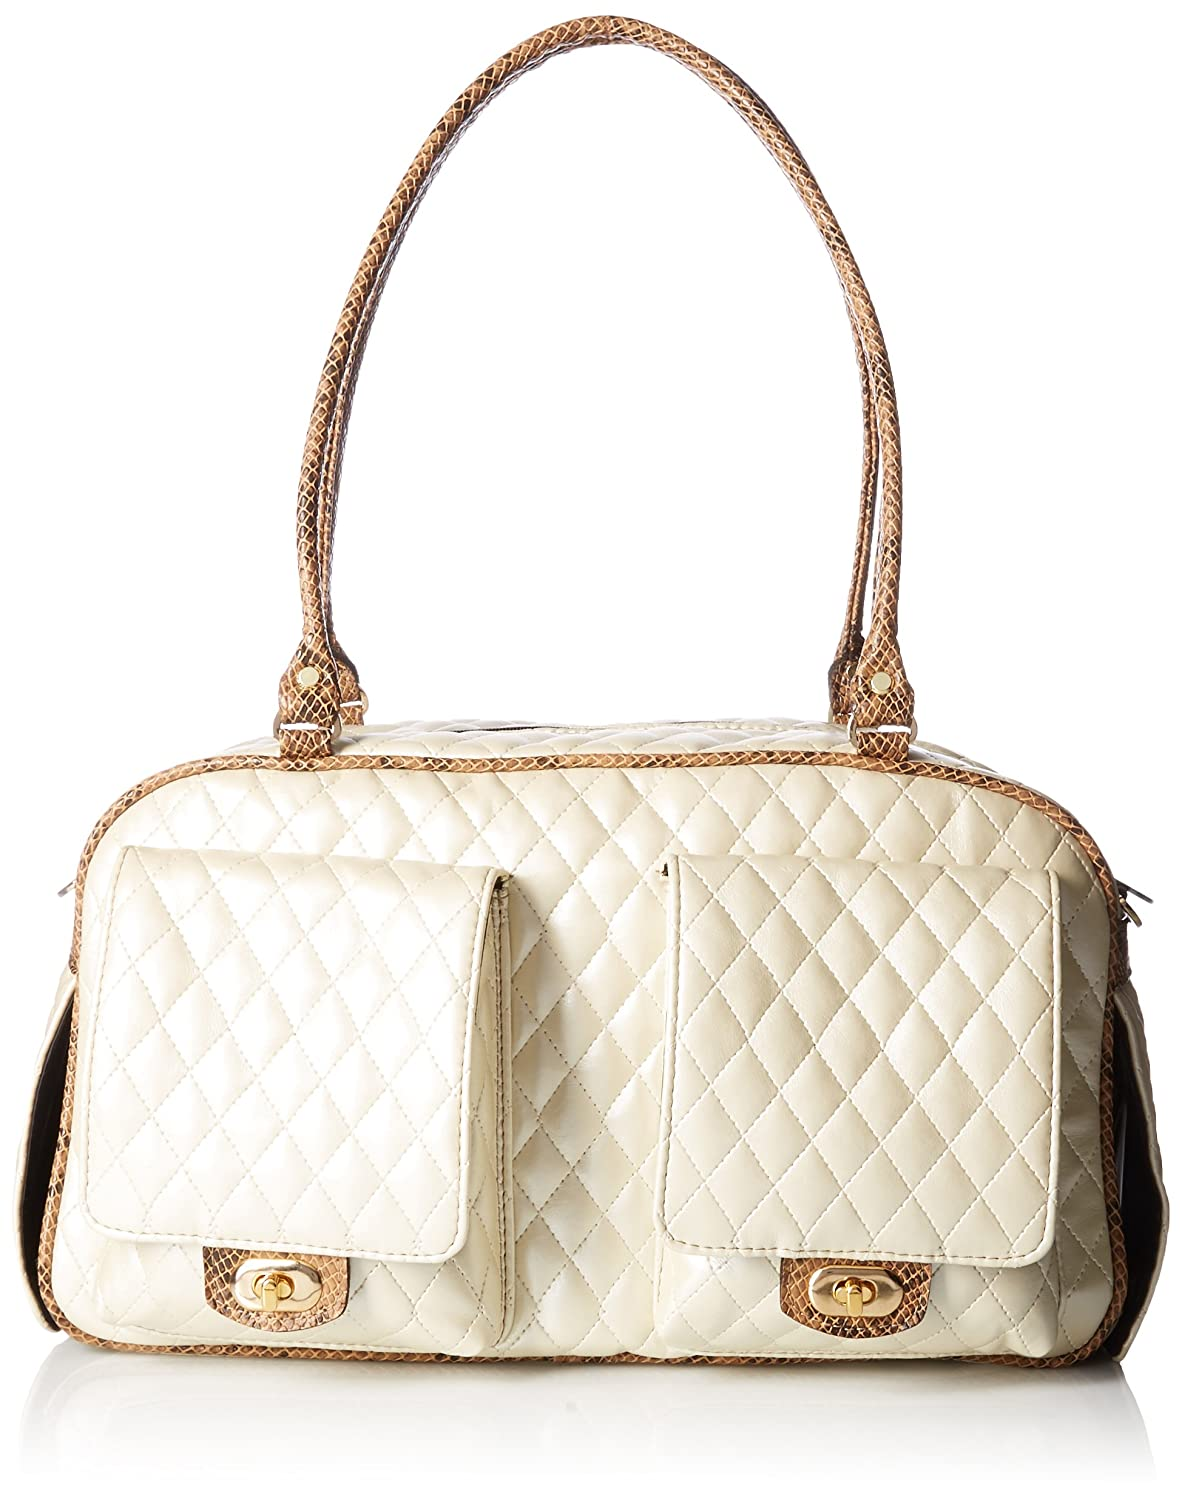 (Ivory Quilted) Petote Marlee Pet Carrier